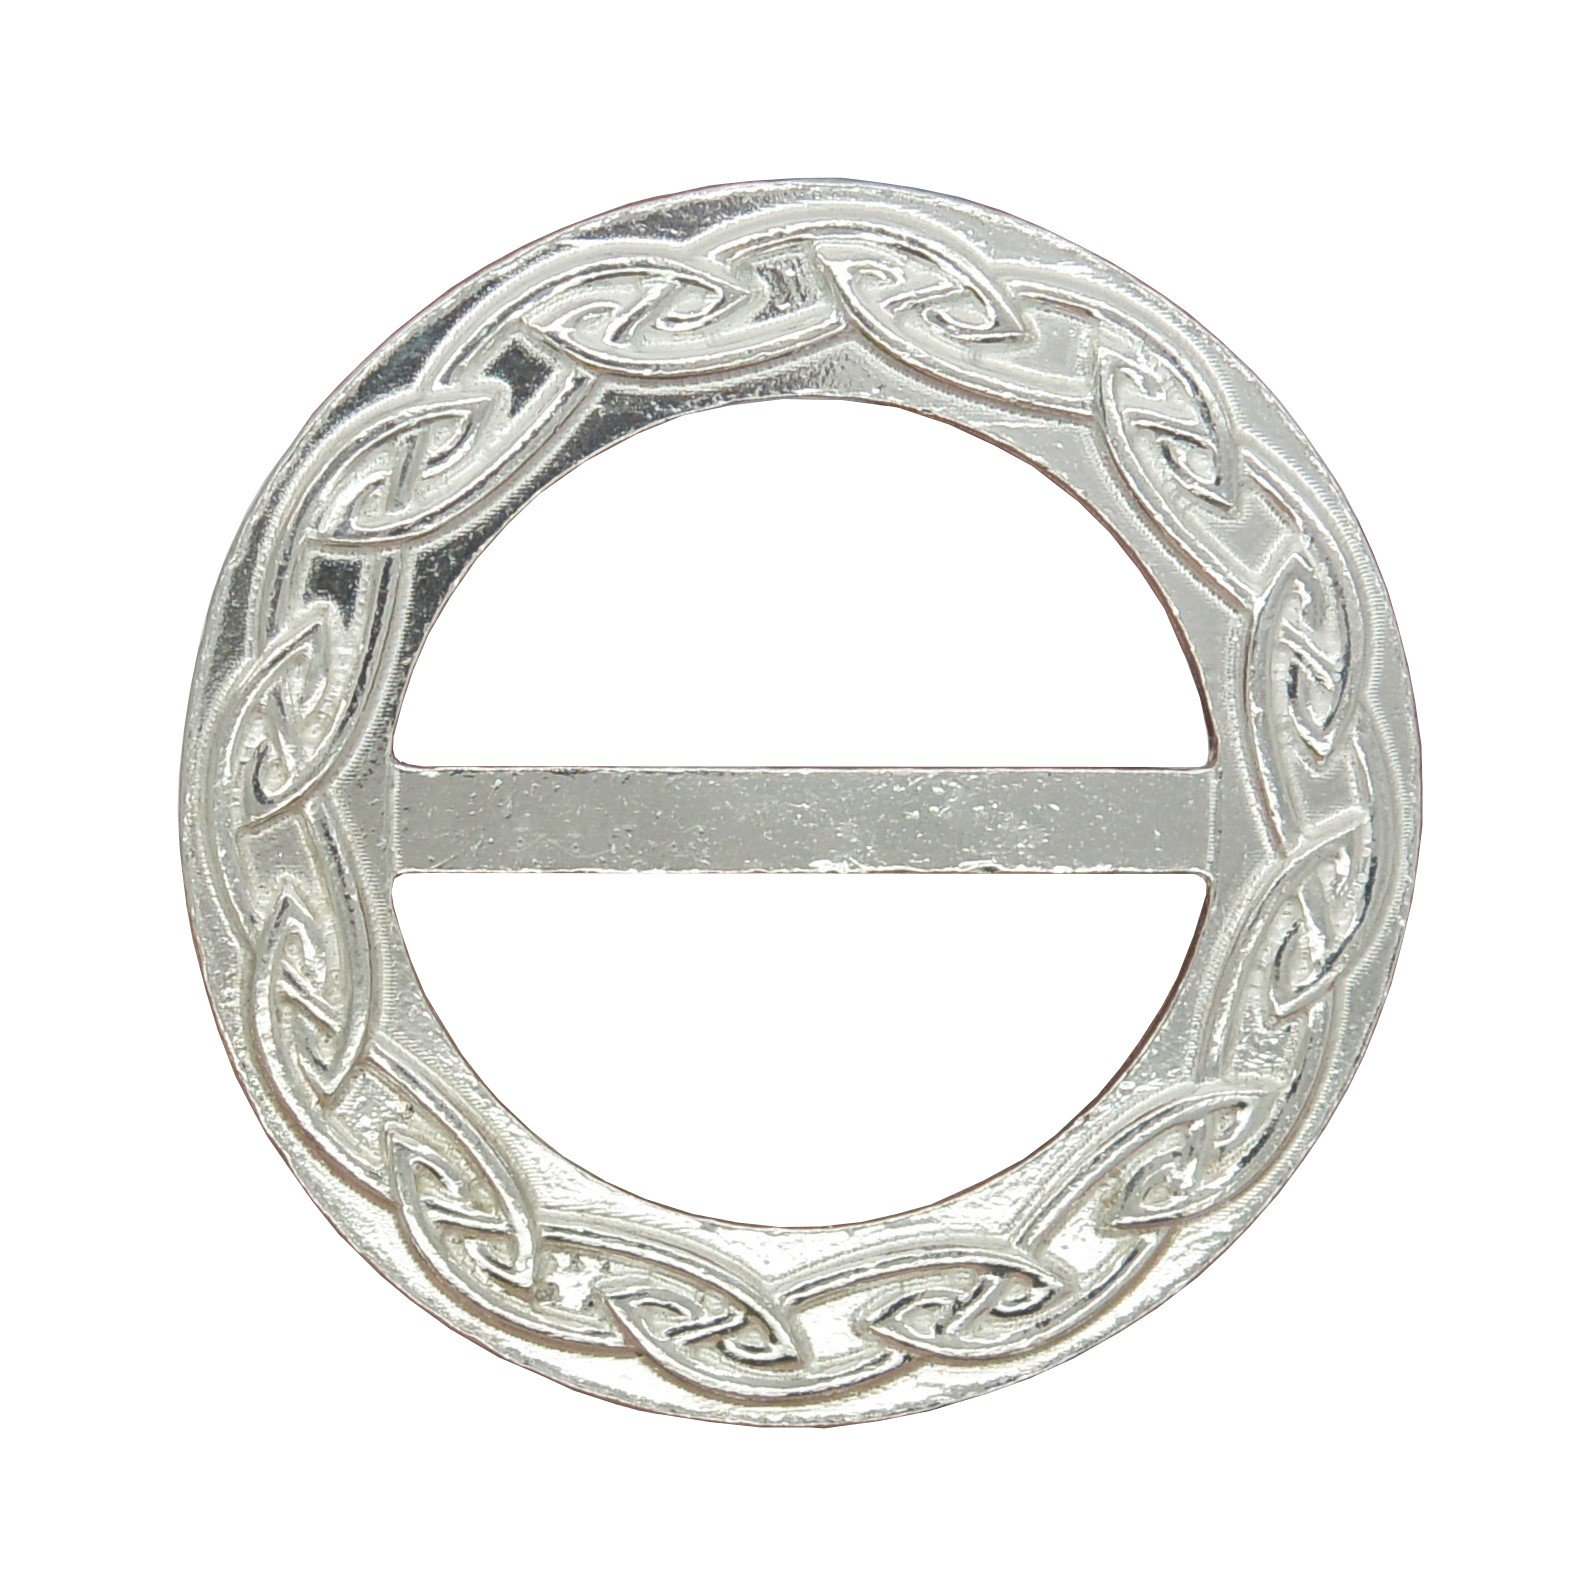 Luxury Fine Pewter Celtic Plait Scarf Ring, Handcast by William Sturt